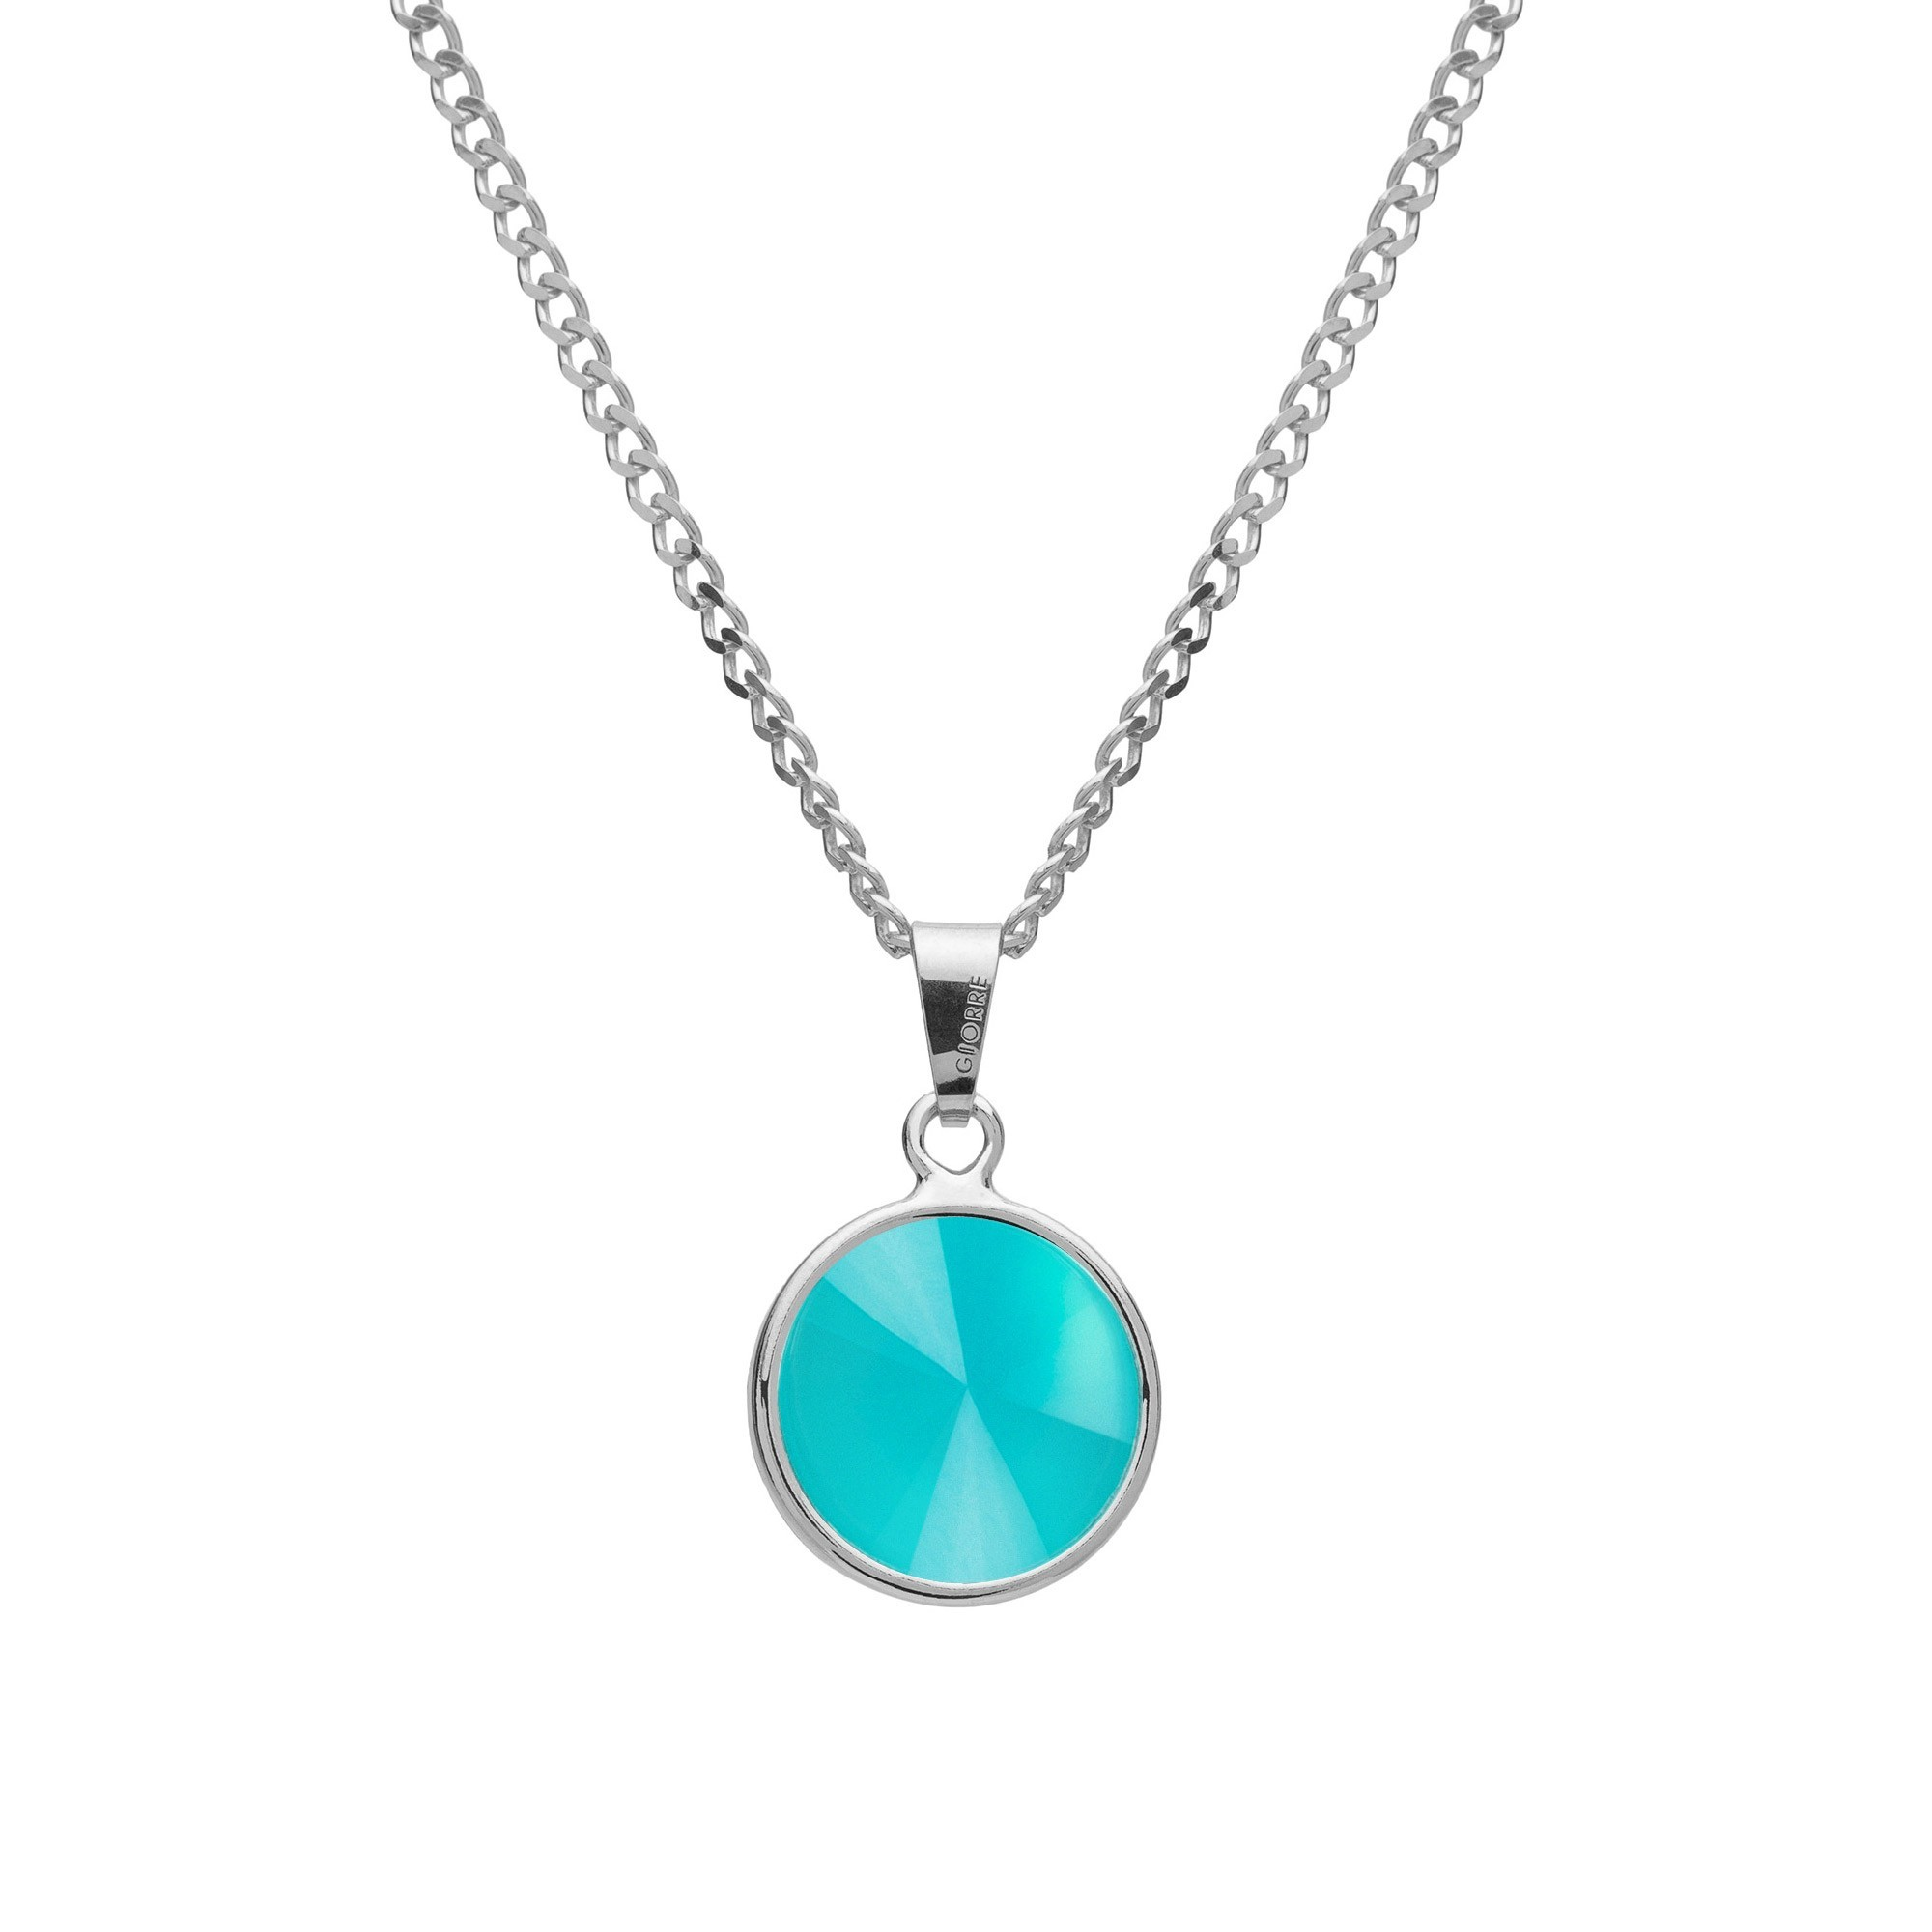 Necklace with natural stone, sterling silver 925